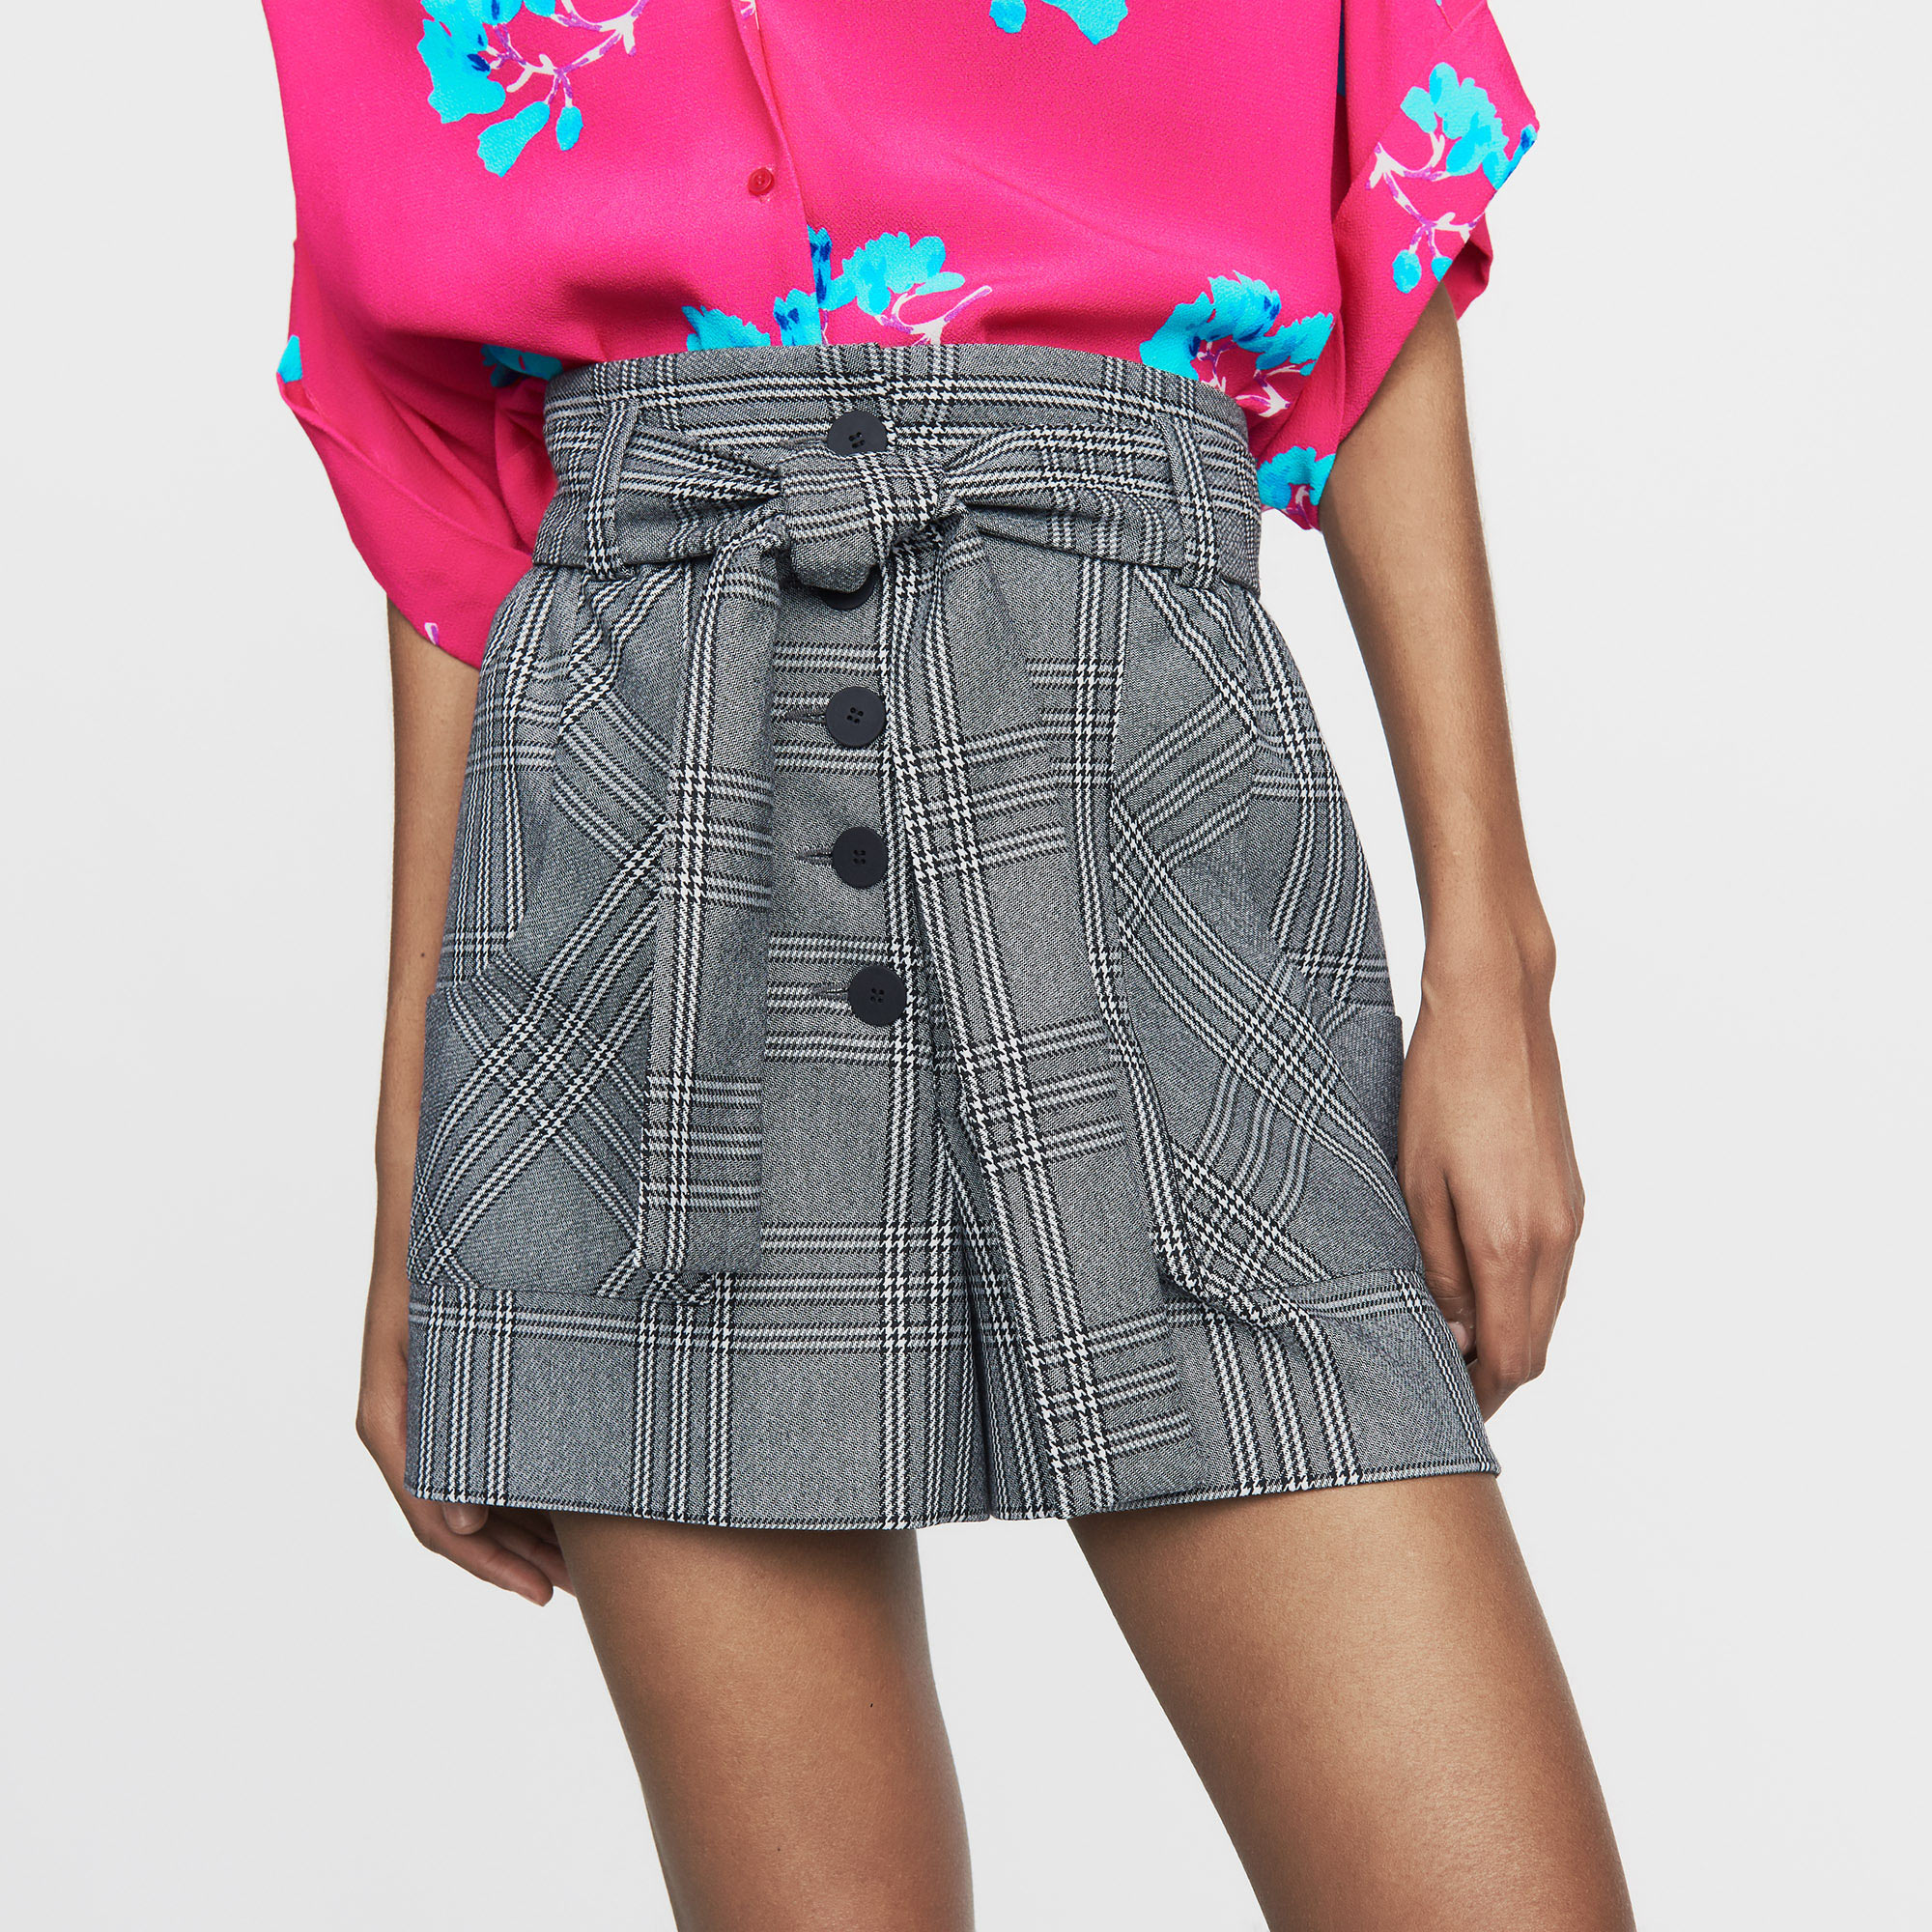 Shorts with Prince of Wales print - Check